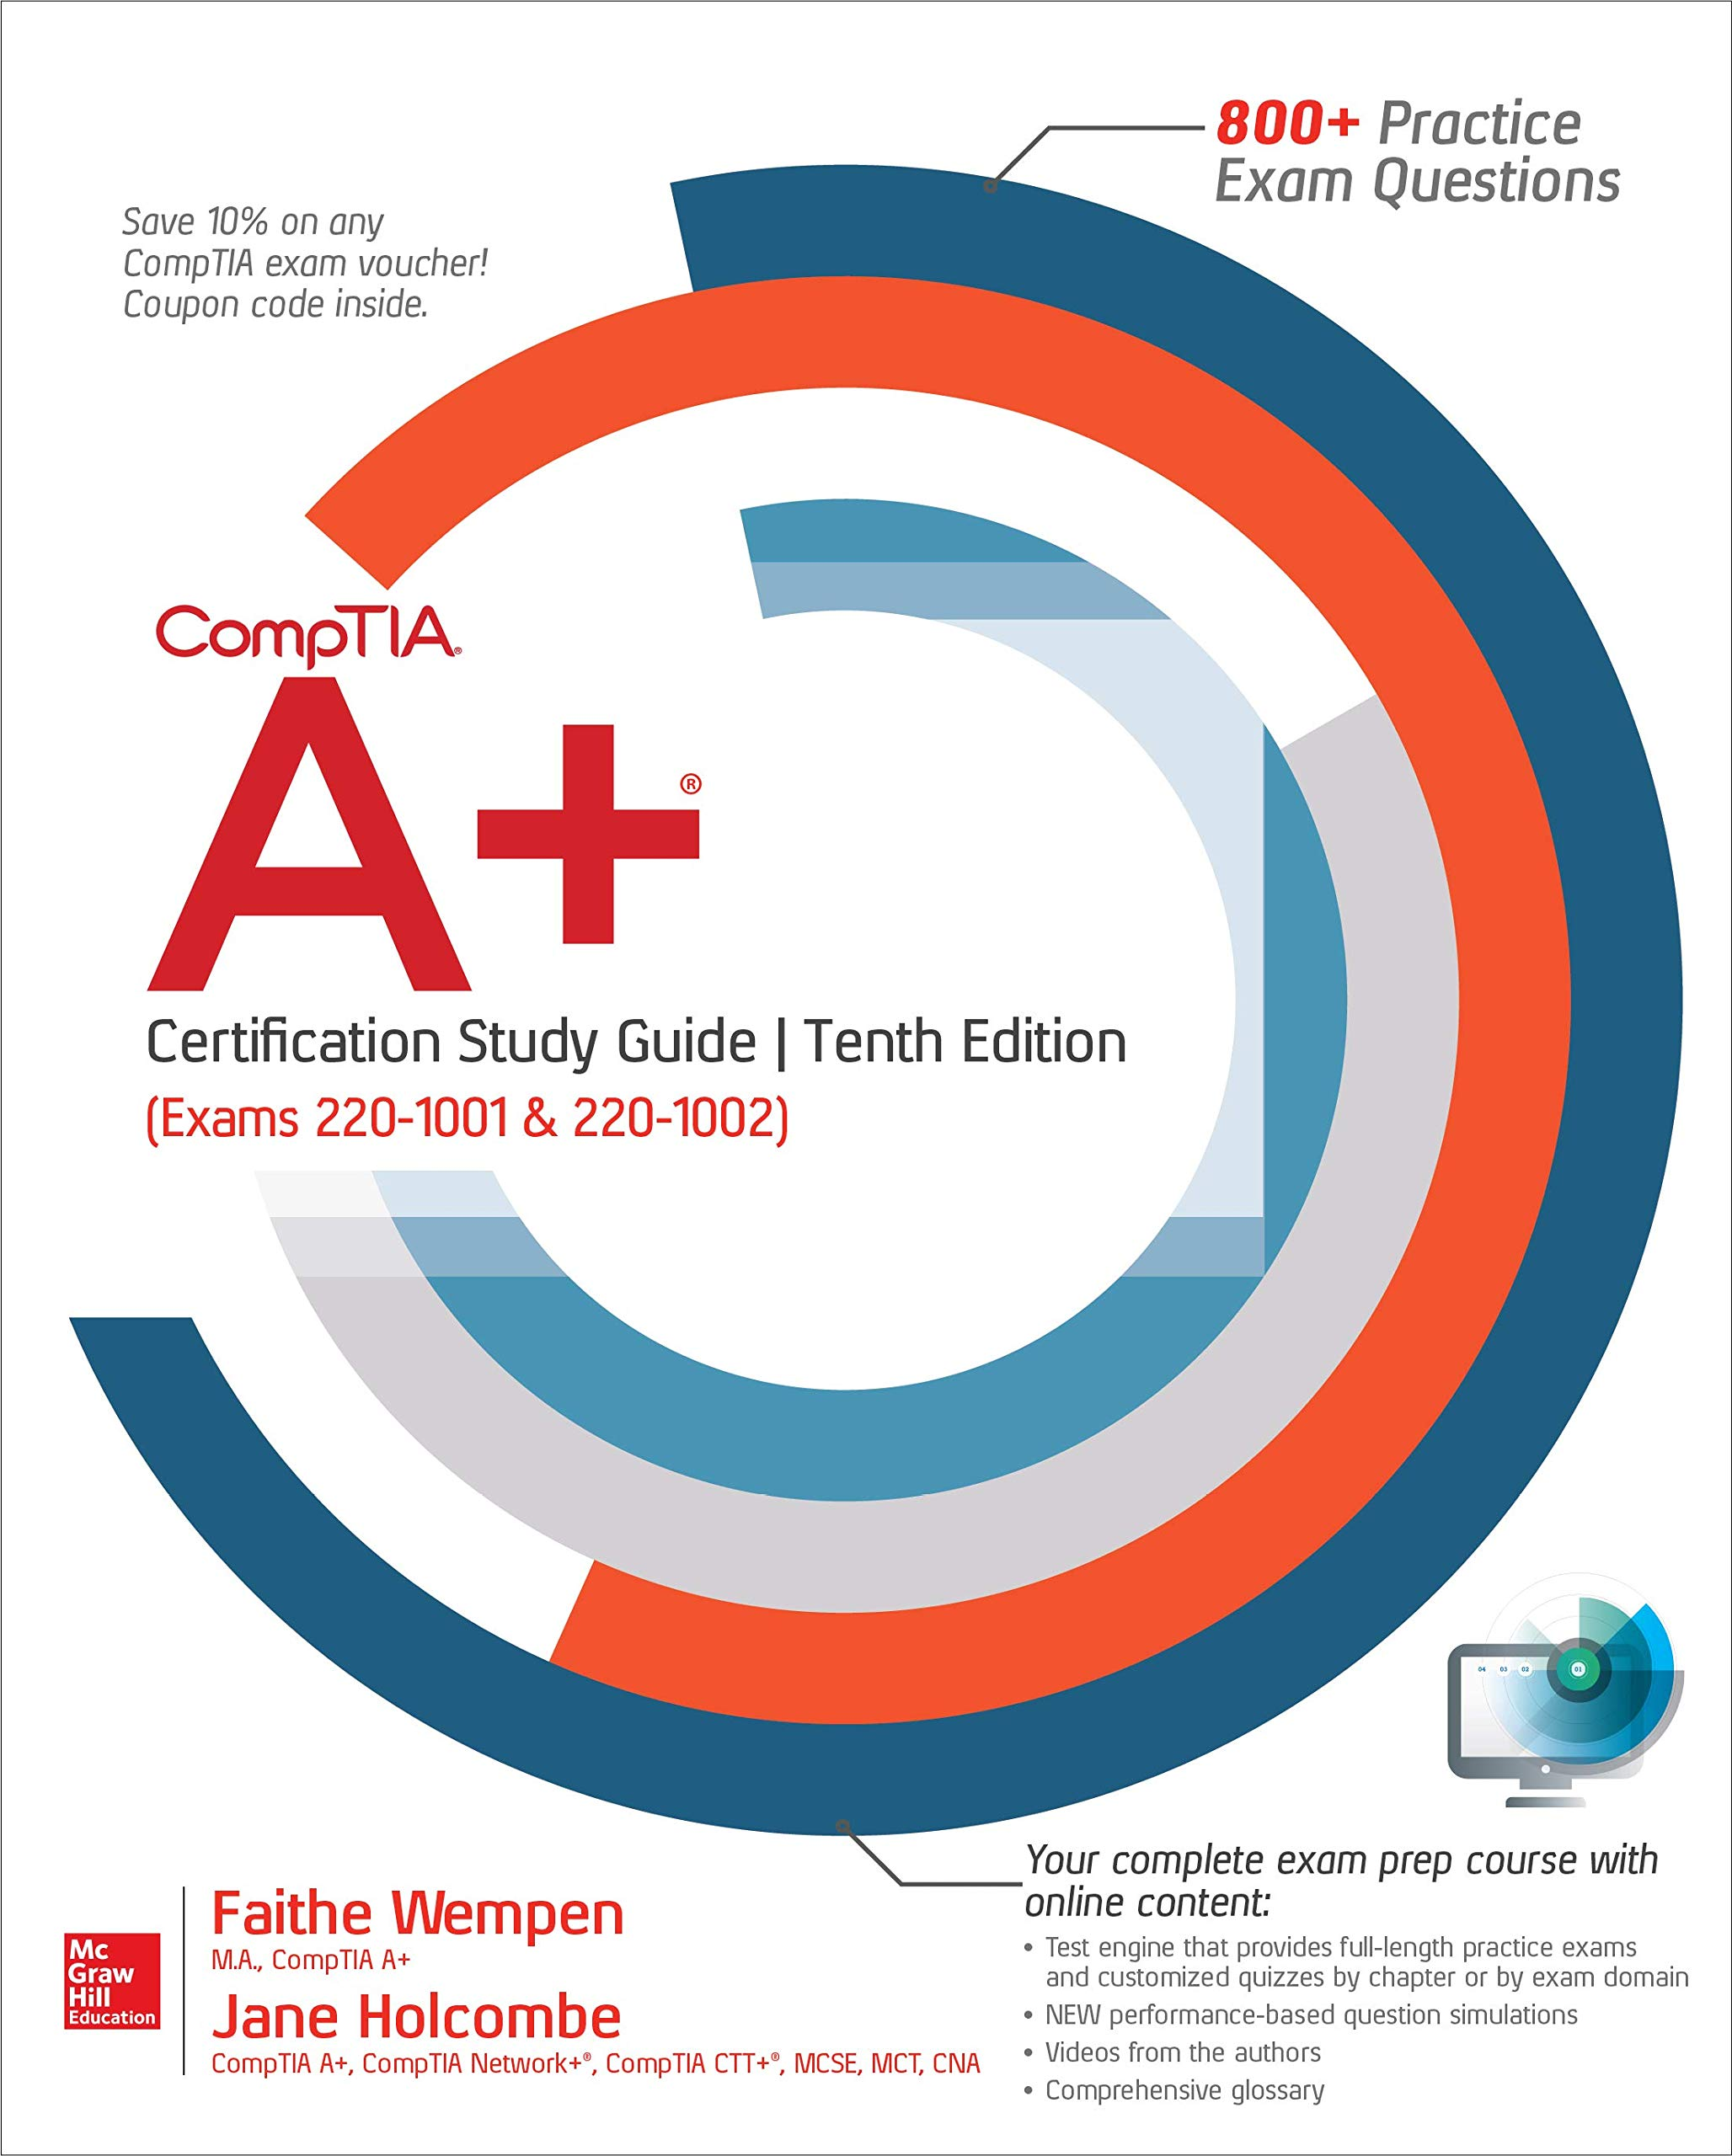 CompTIA A+ Certification Study Guide, Tenth Edition (Exams 220-1001 & 220-1002) by McGraw-Hill Education